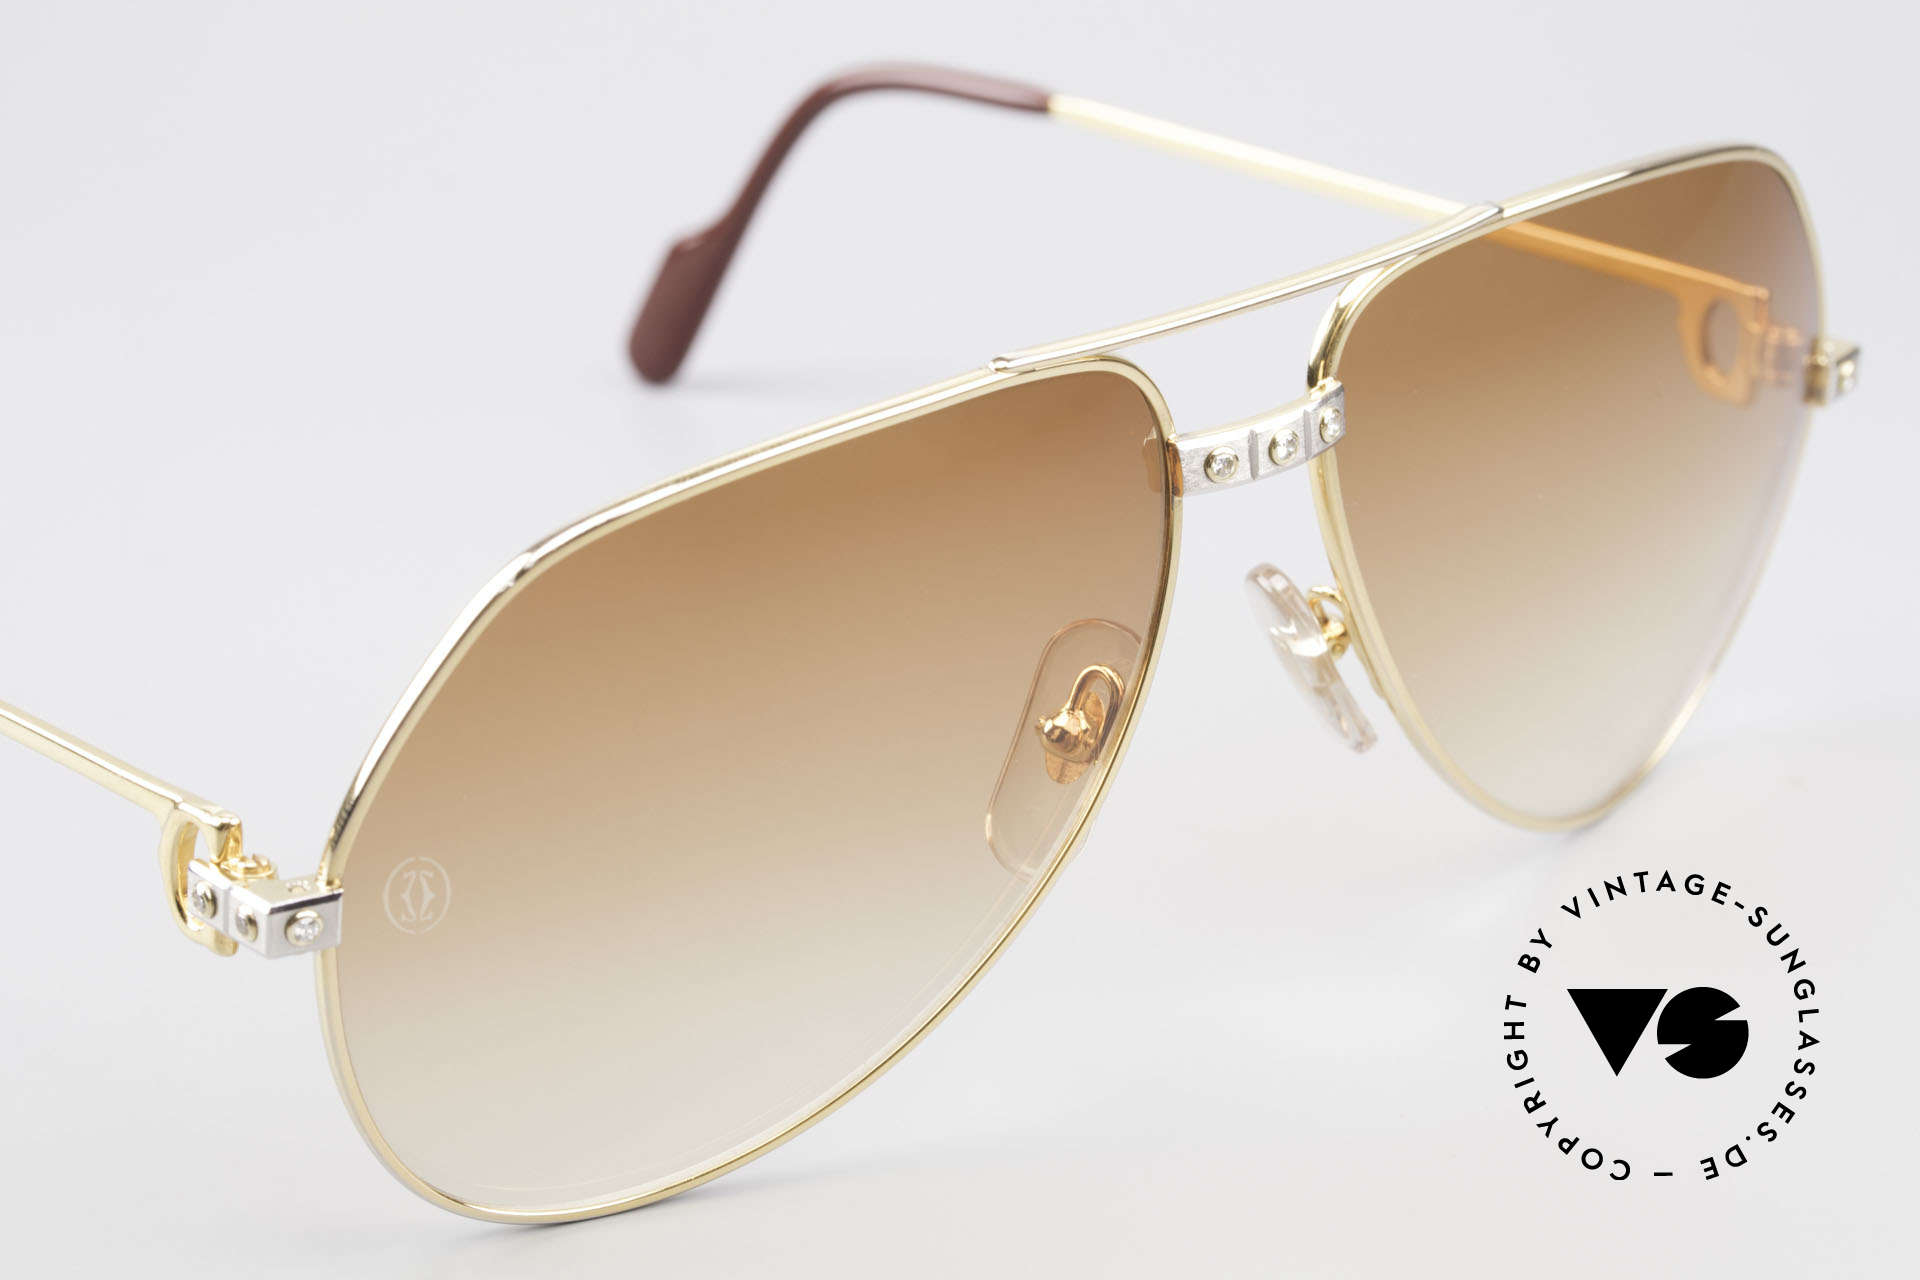 Cartier Vendome Santos - L Customized Diamond Shades, Size: large, Made for Men